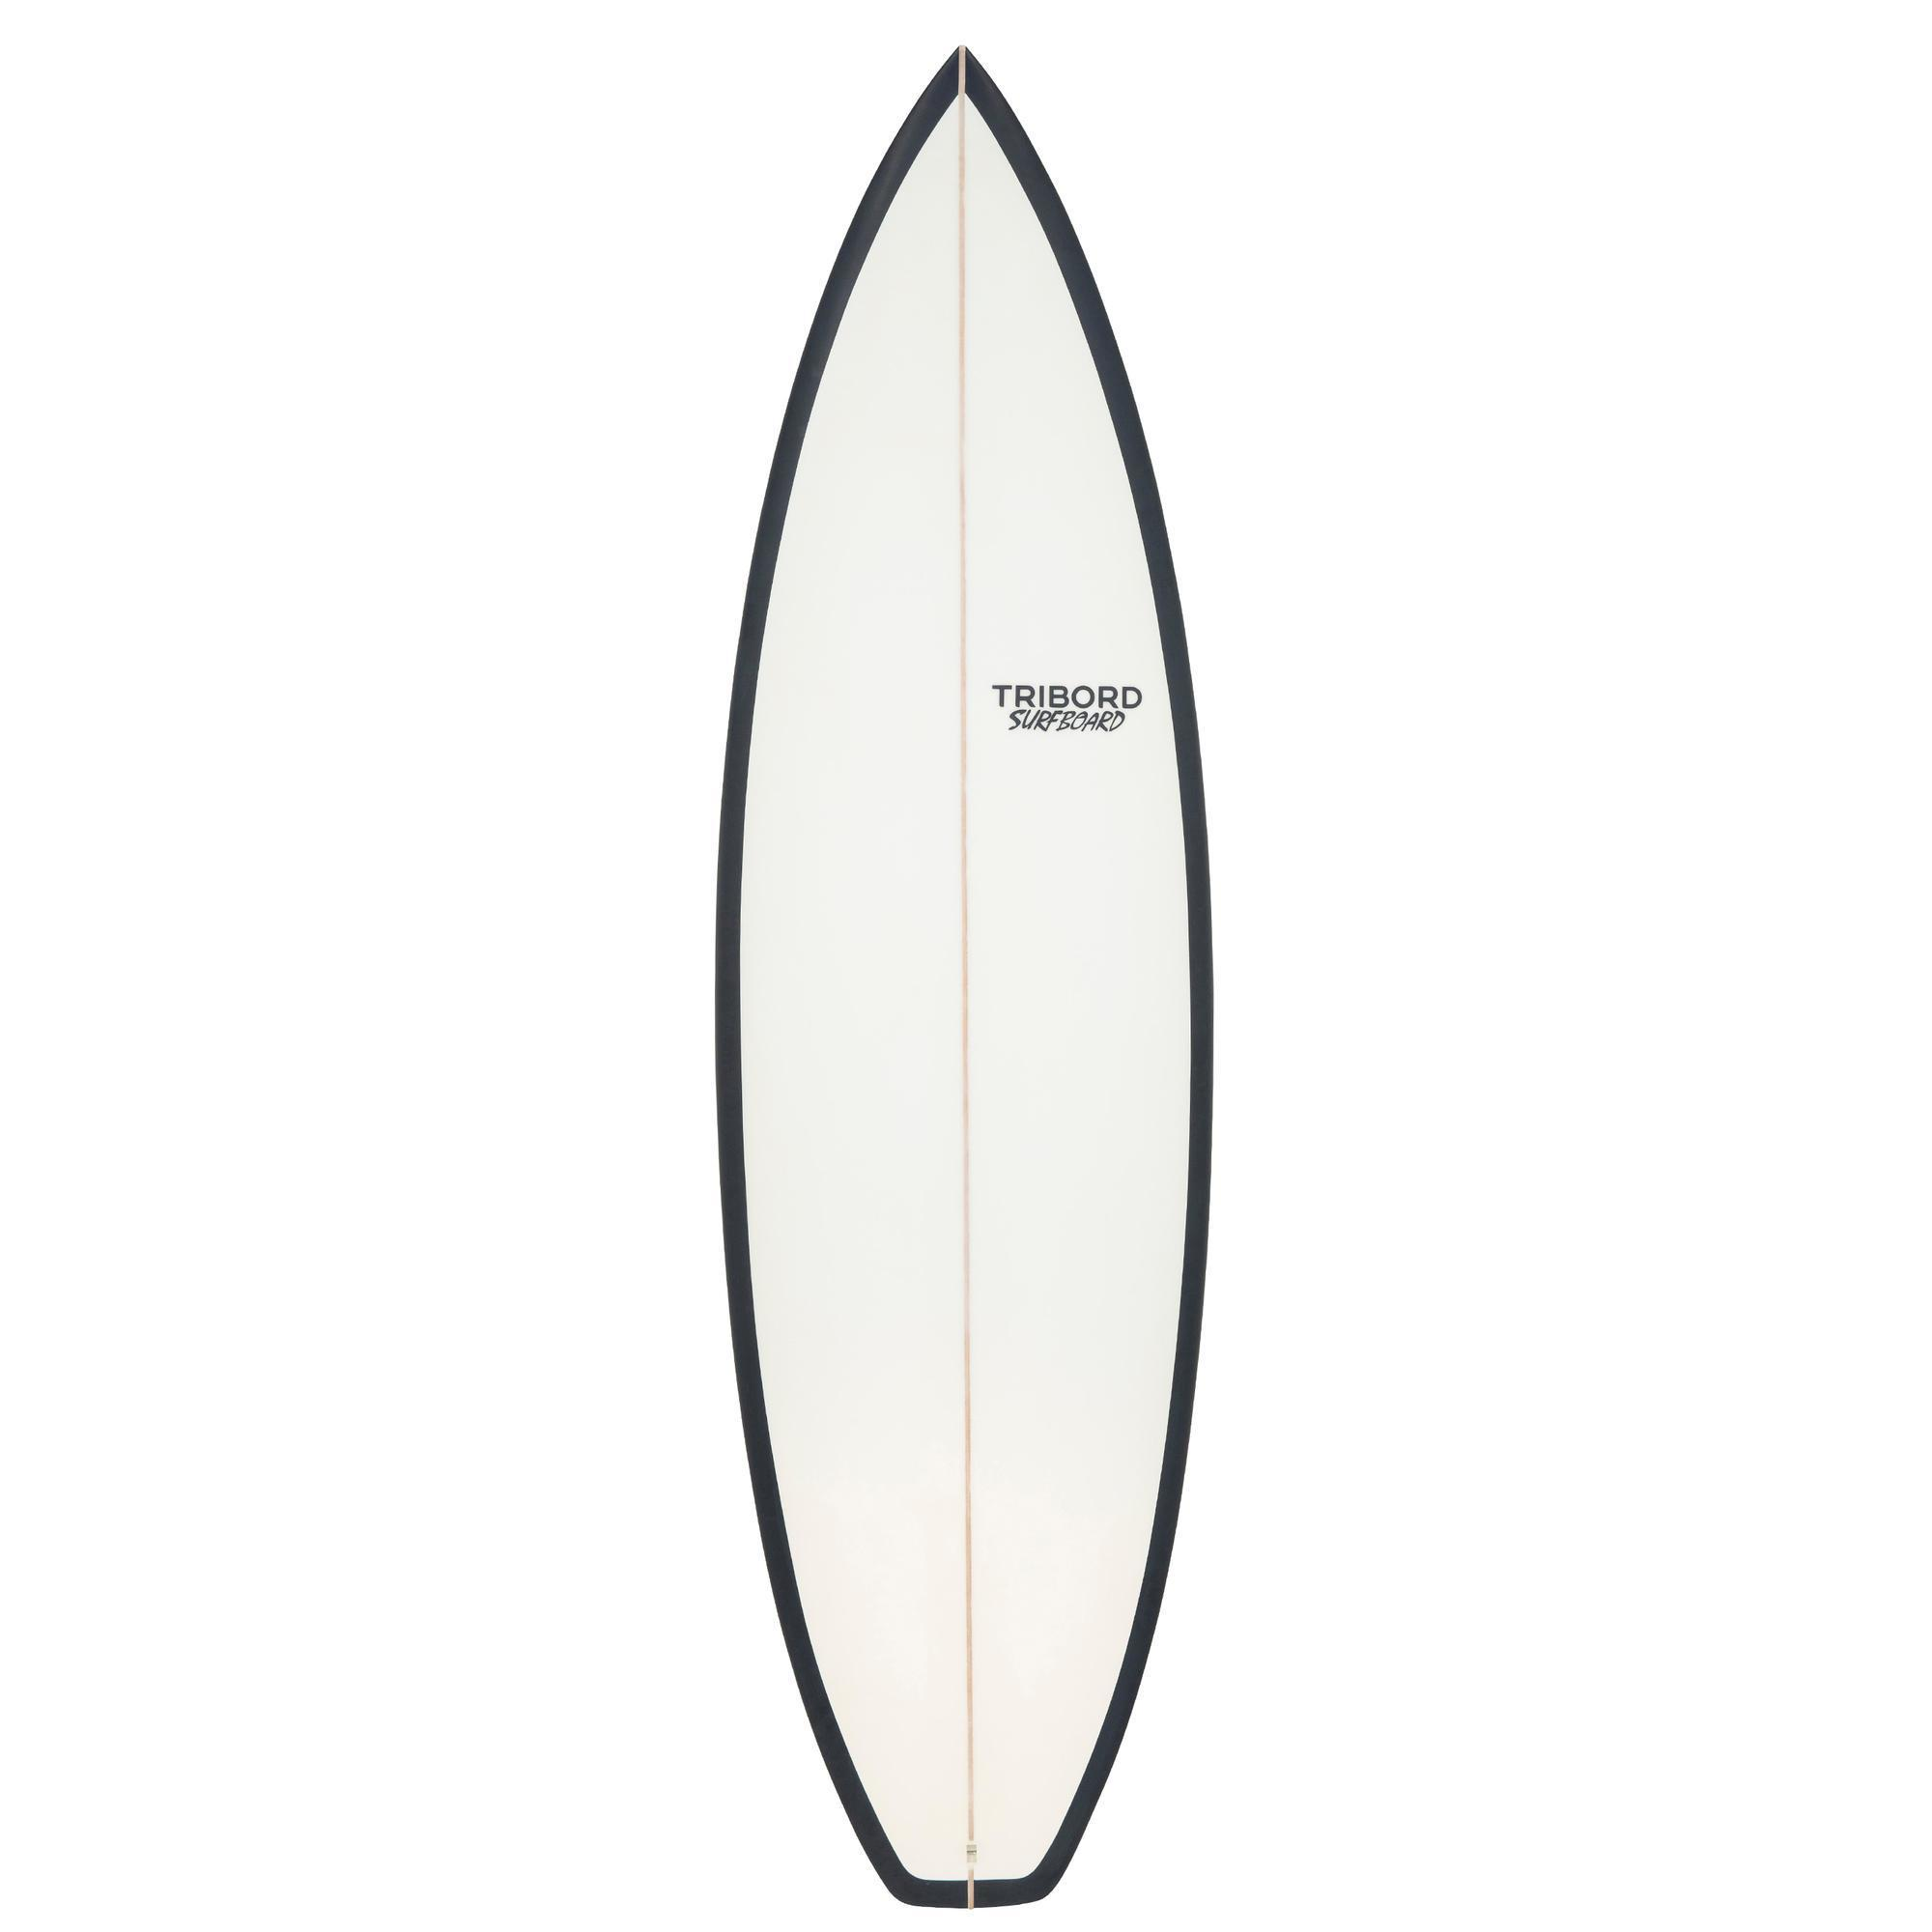 Planche de surf 900 6 39 stratifi e r sine epoxy hand made for Skimboard template